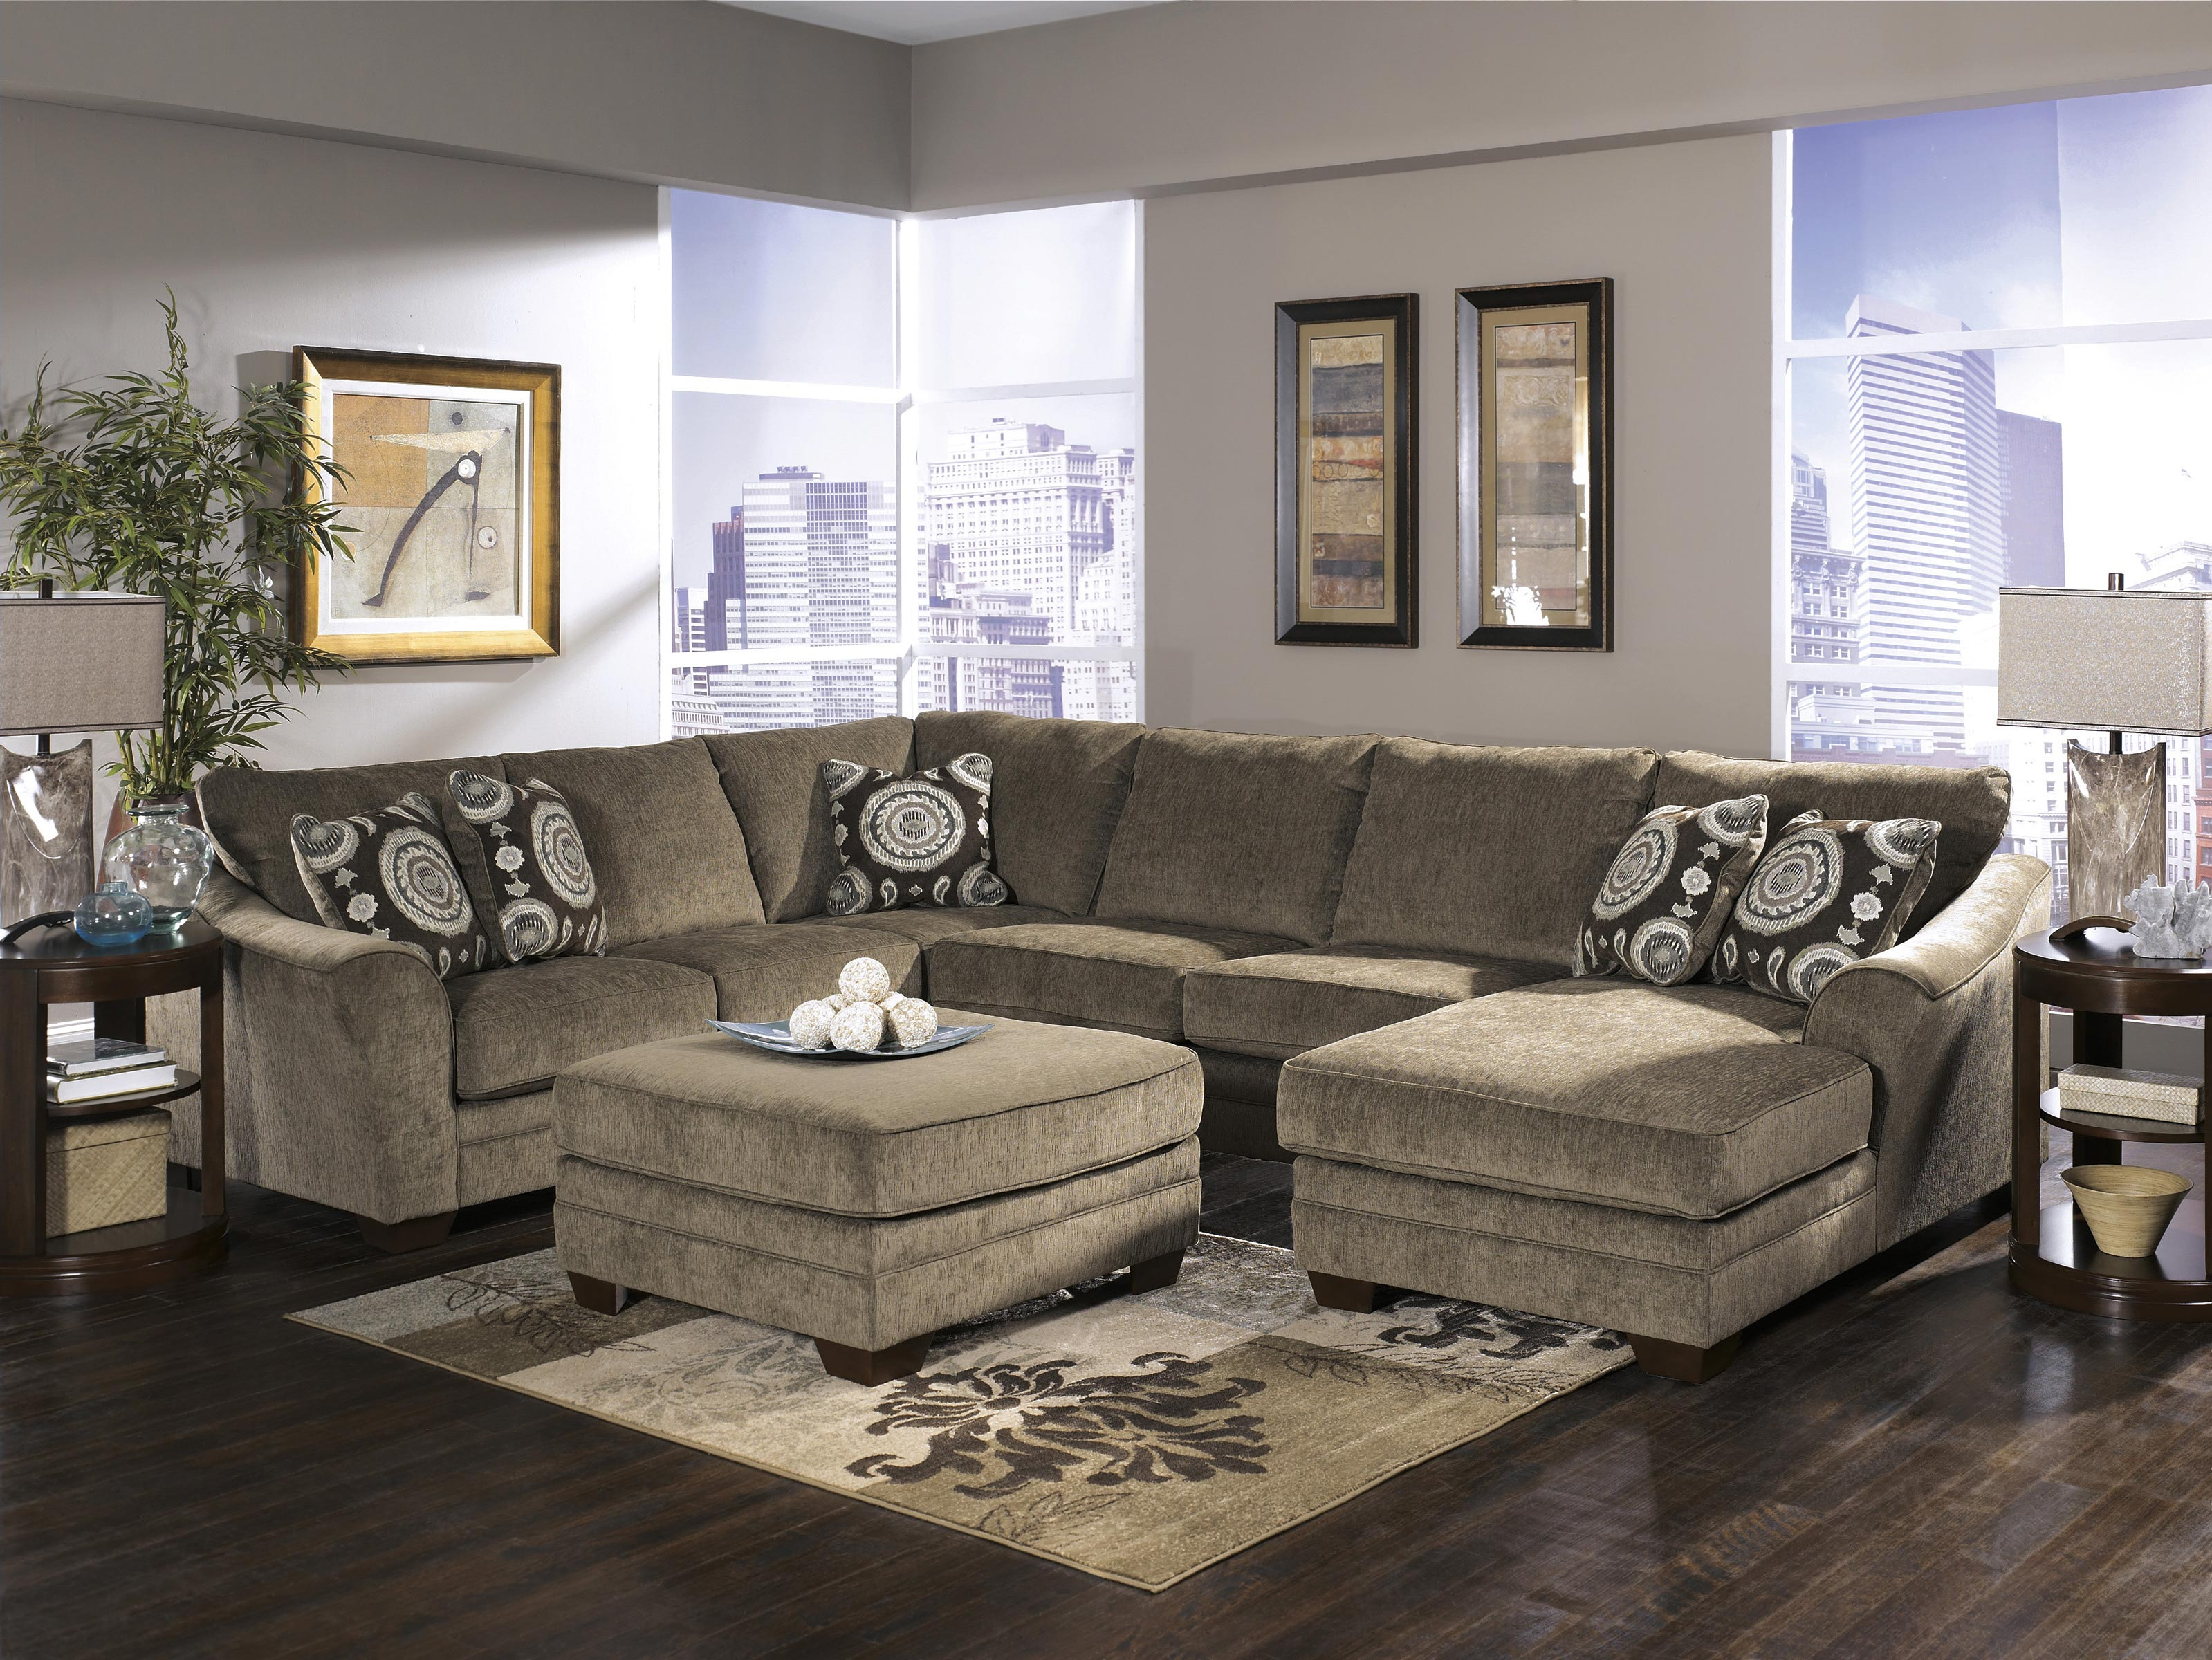 living room furniture ideas sectional living room ideas with sectionals sofa for small living 908